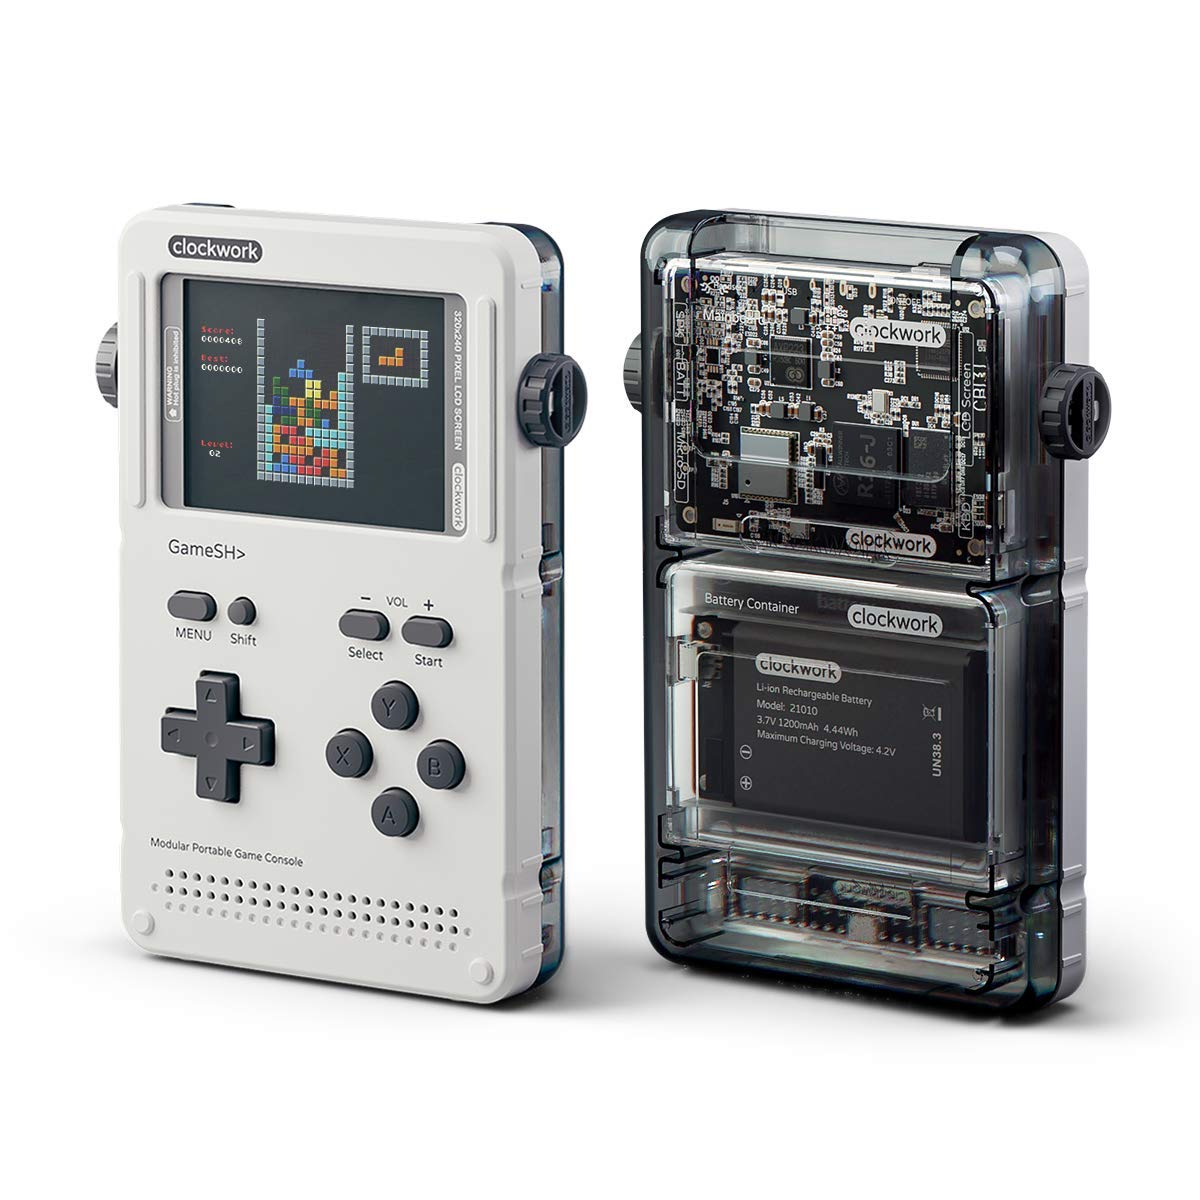 Clockwork GameShell Portable Game Console